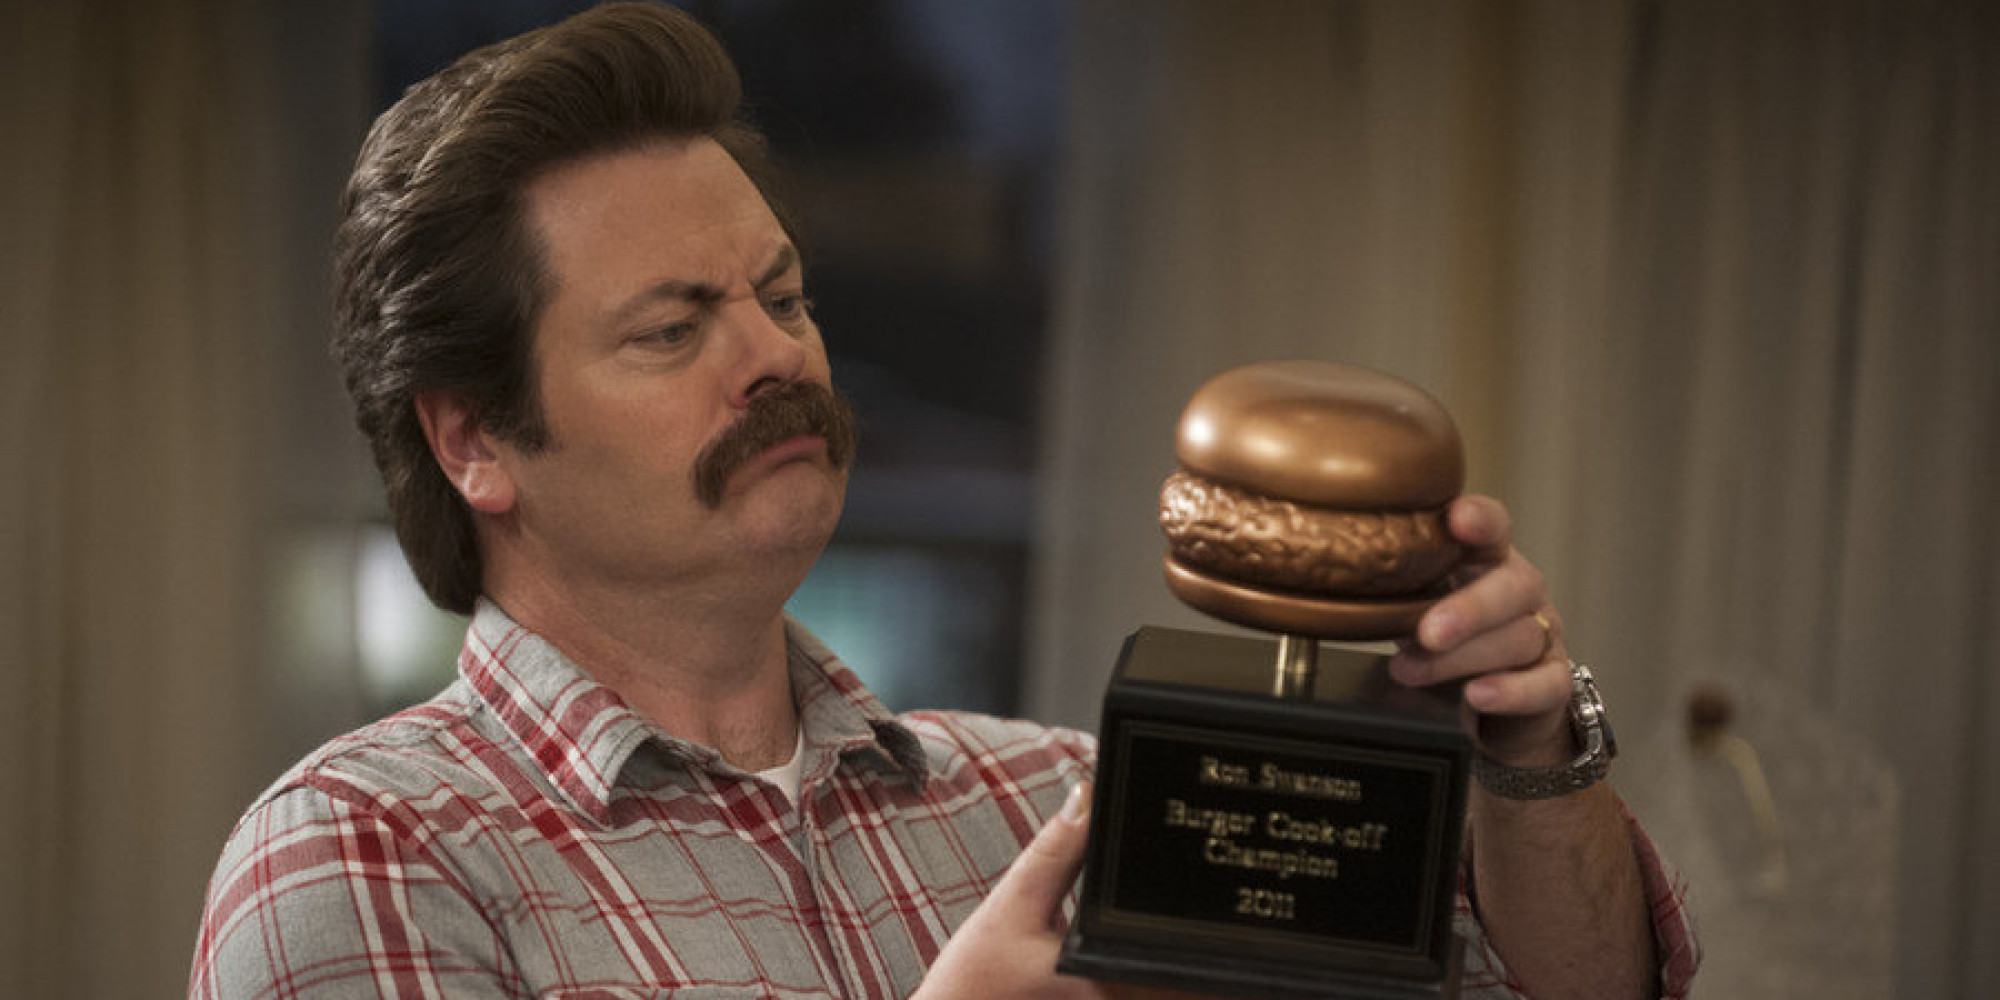 11 Times Ron Swanson Made Parks And Recreation Even Better